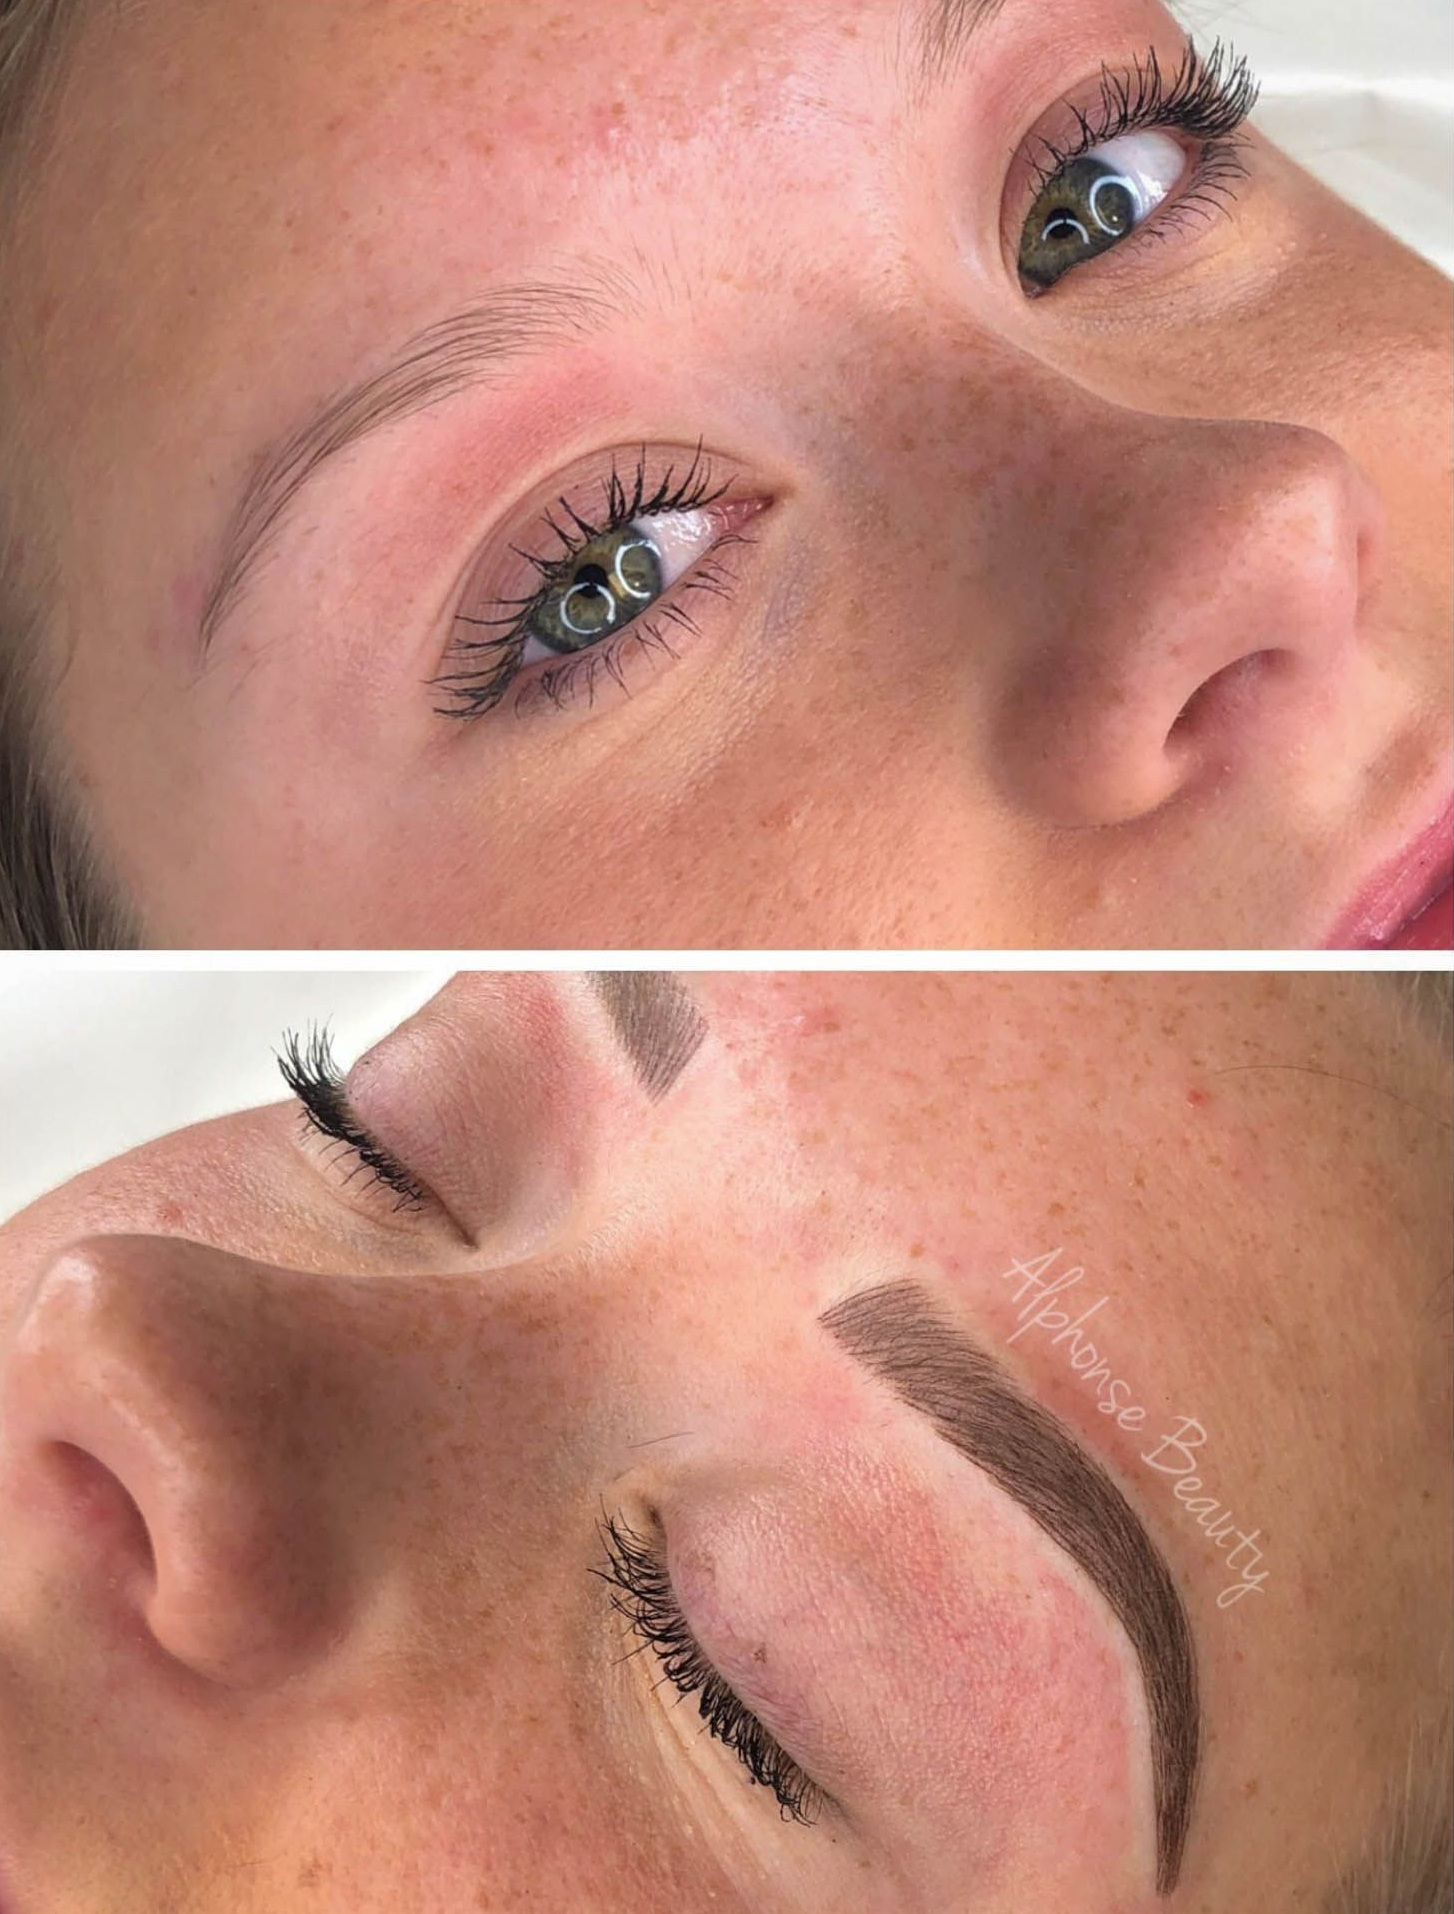 Alphonse Beauty Eyebrow Microblading Results